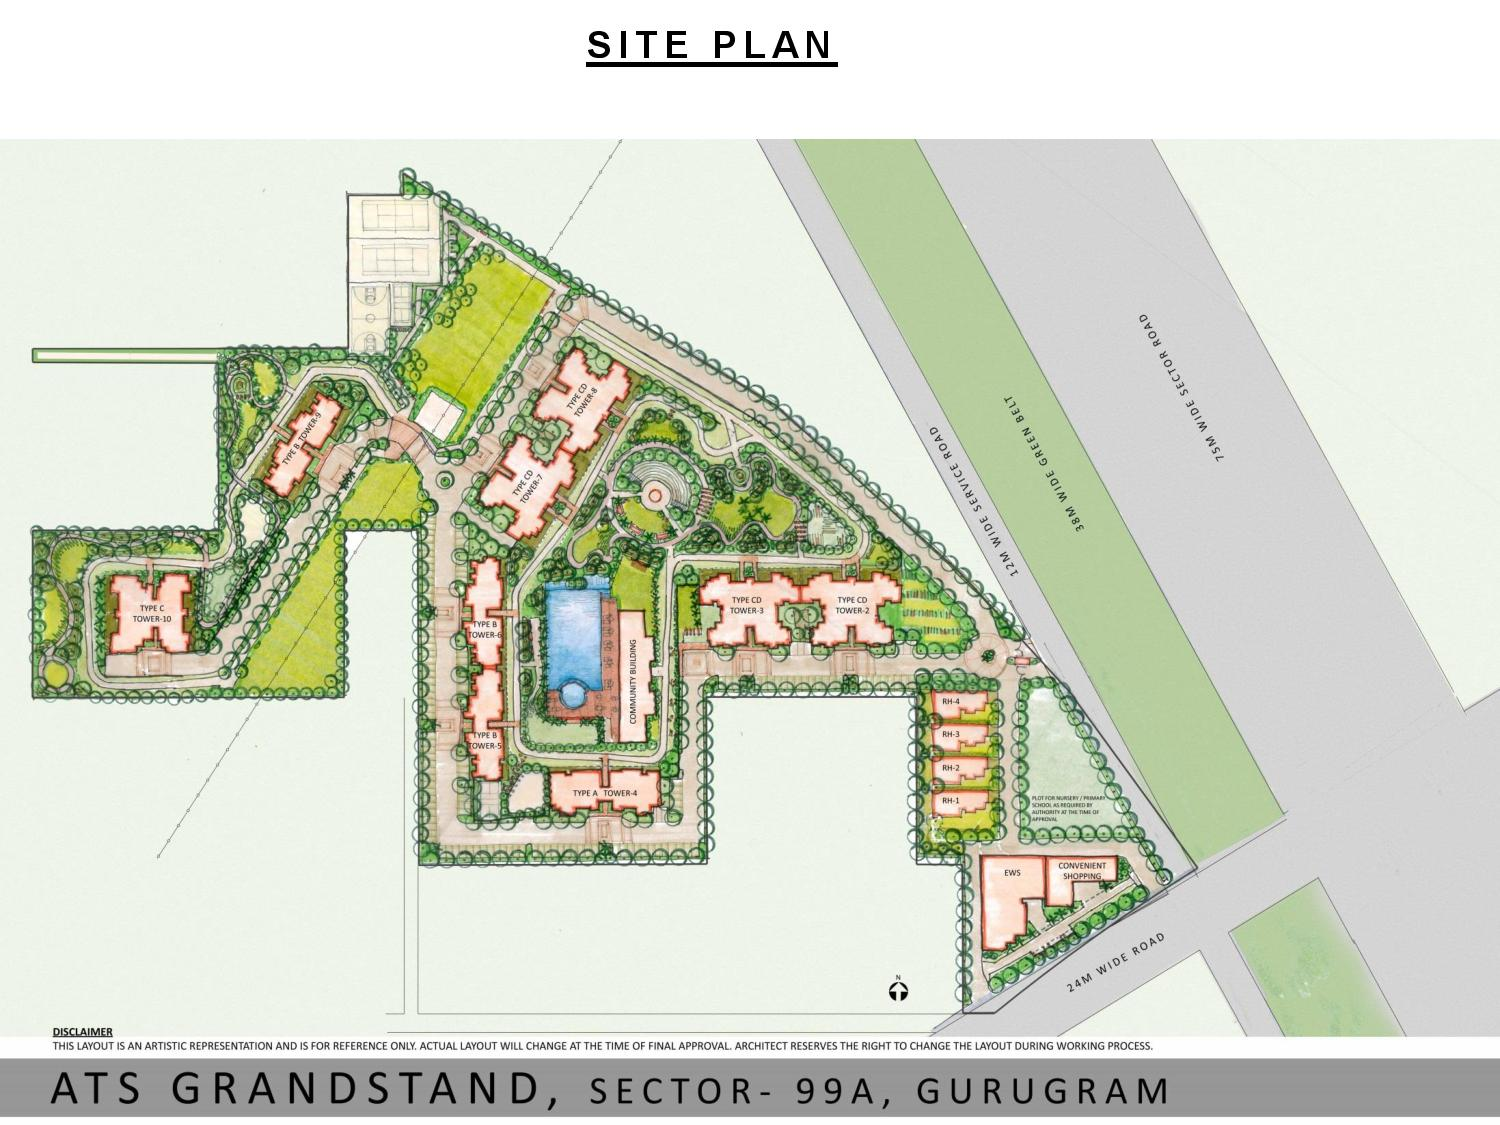 Site Plan of ATS Grandstand